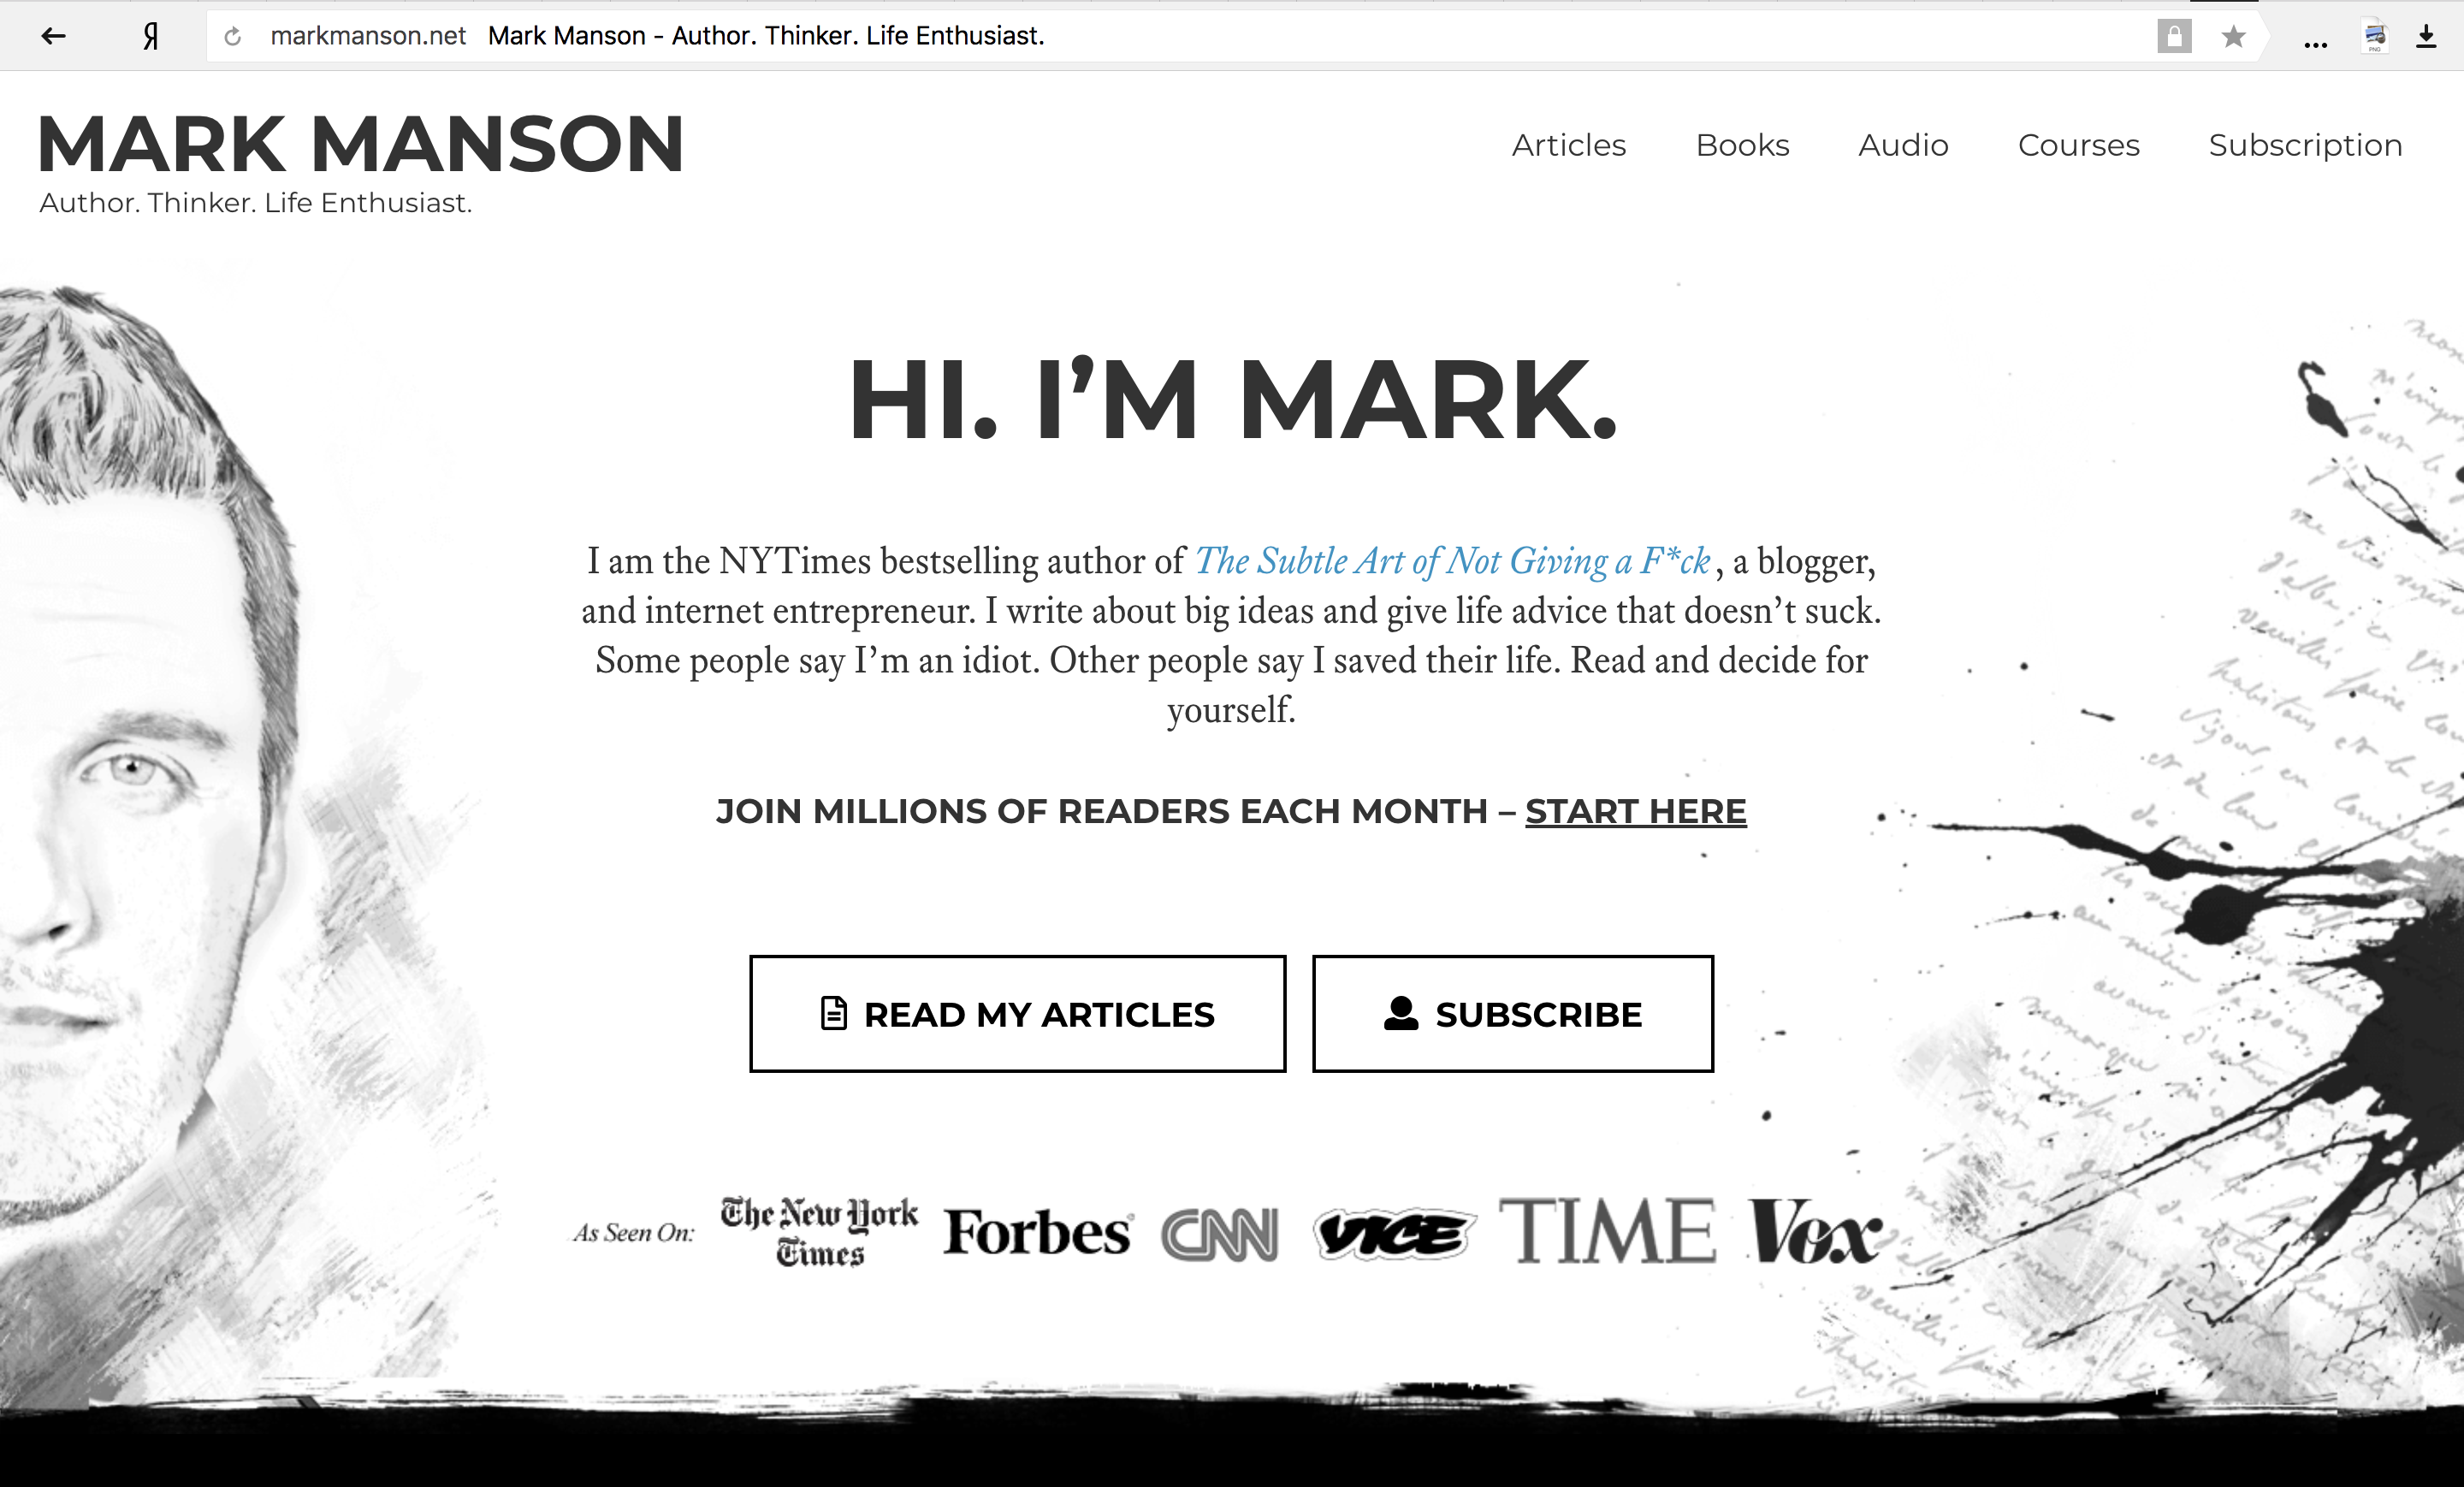 The Subtle Art of Not Giving a F*ck summary: Manson's personal website preview